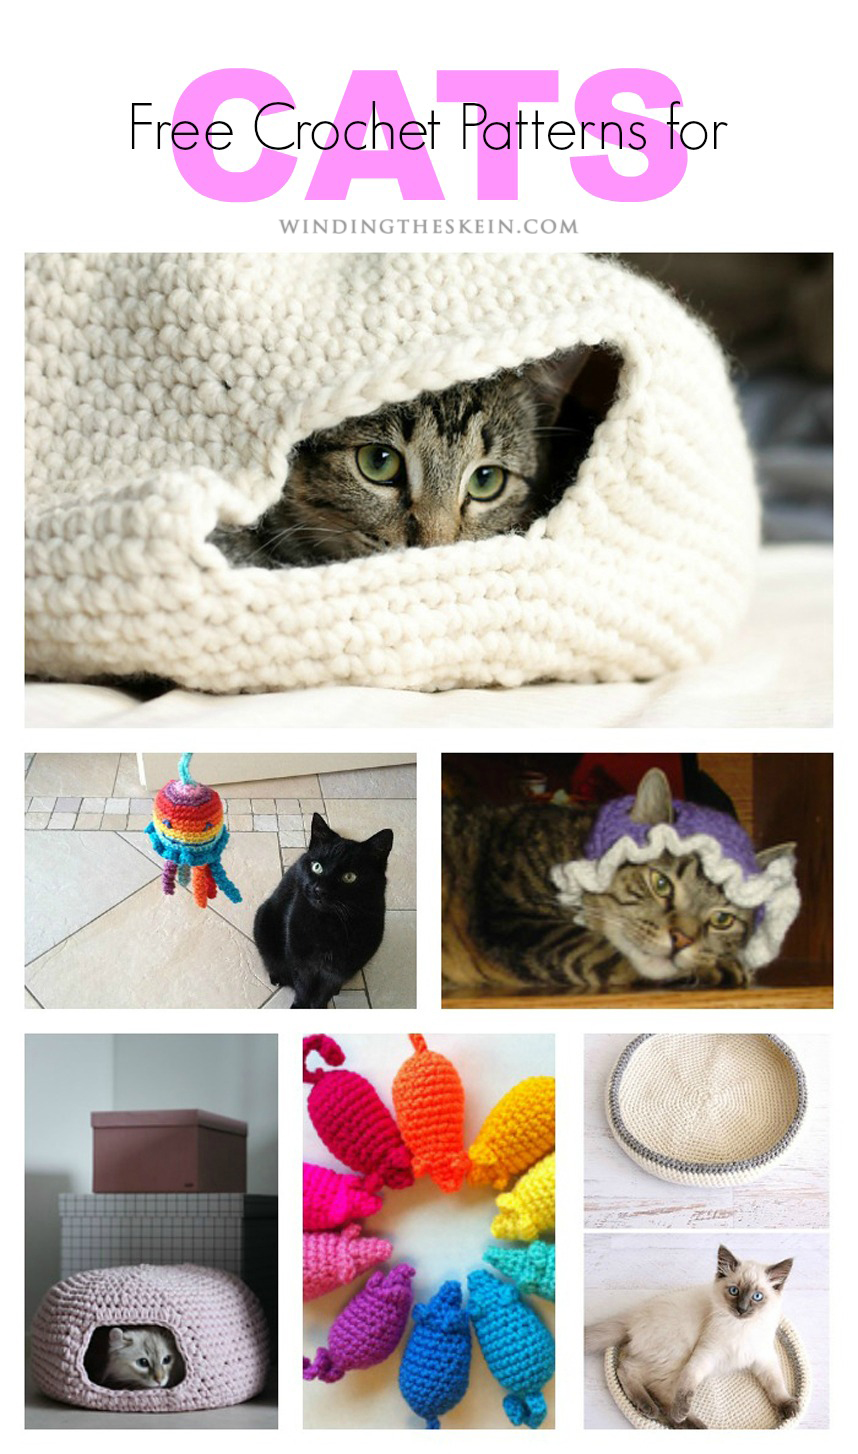 23 Free Crochet Patterns for Household Pets - Winding the ...